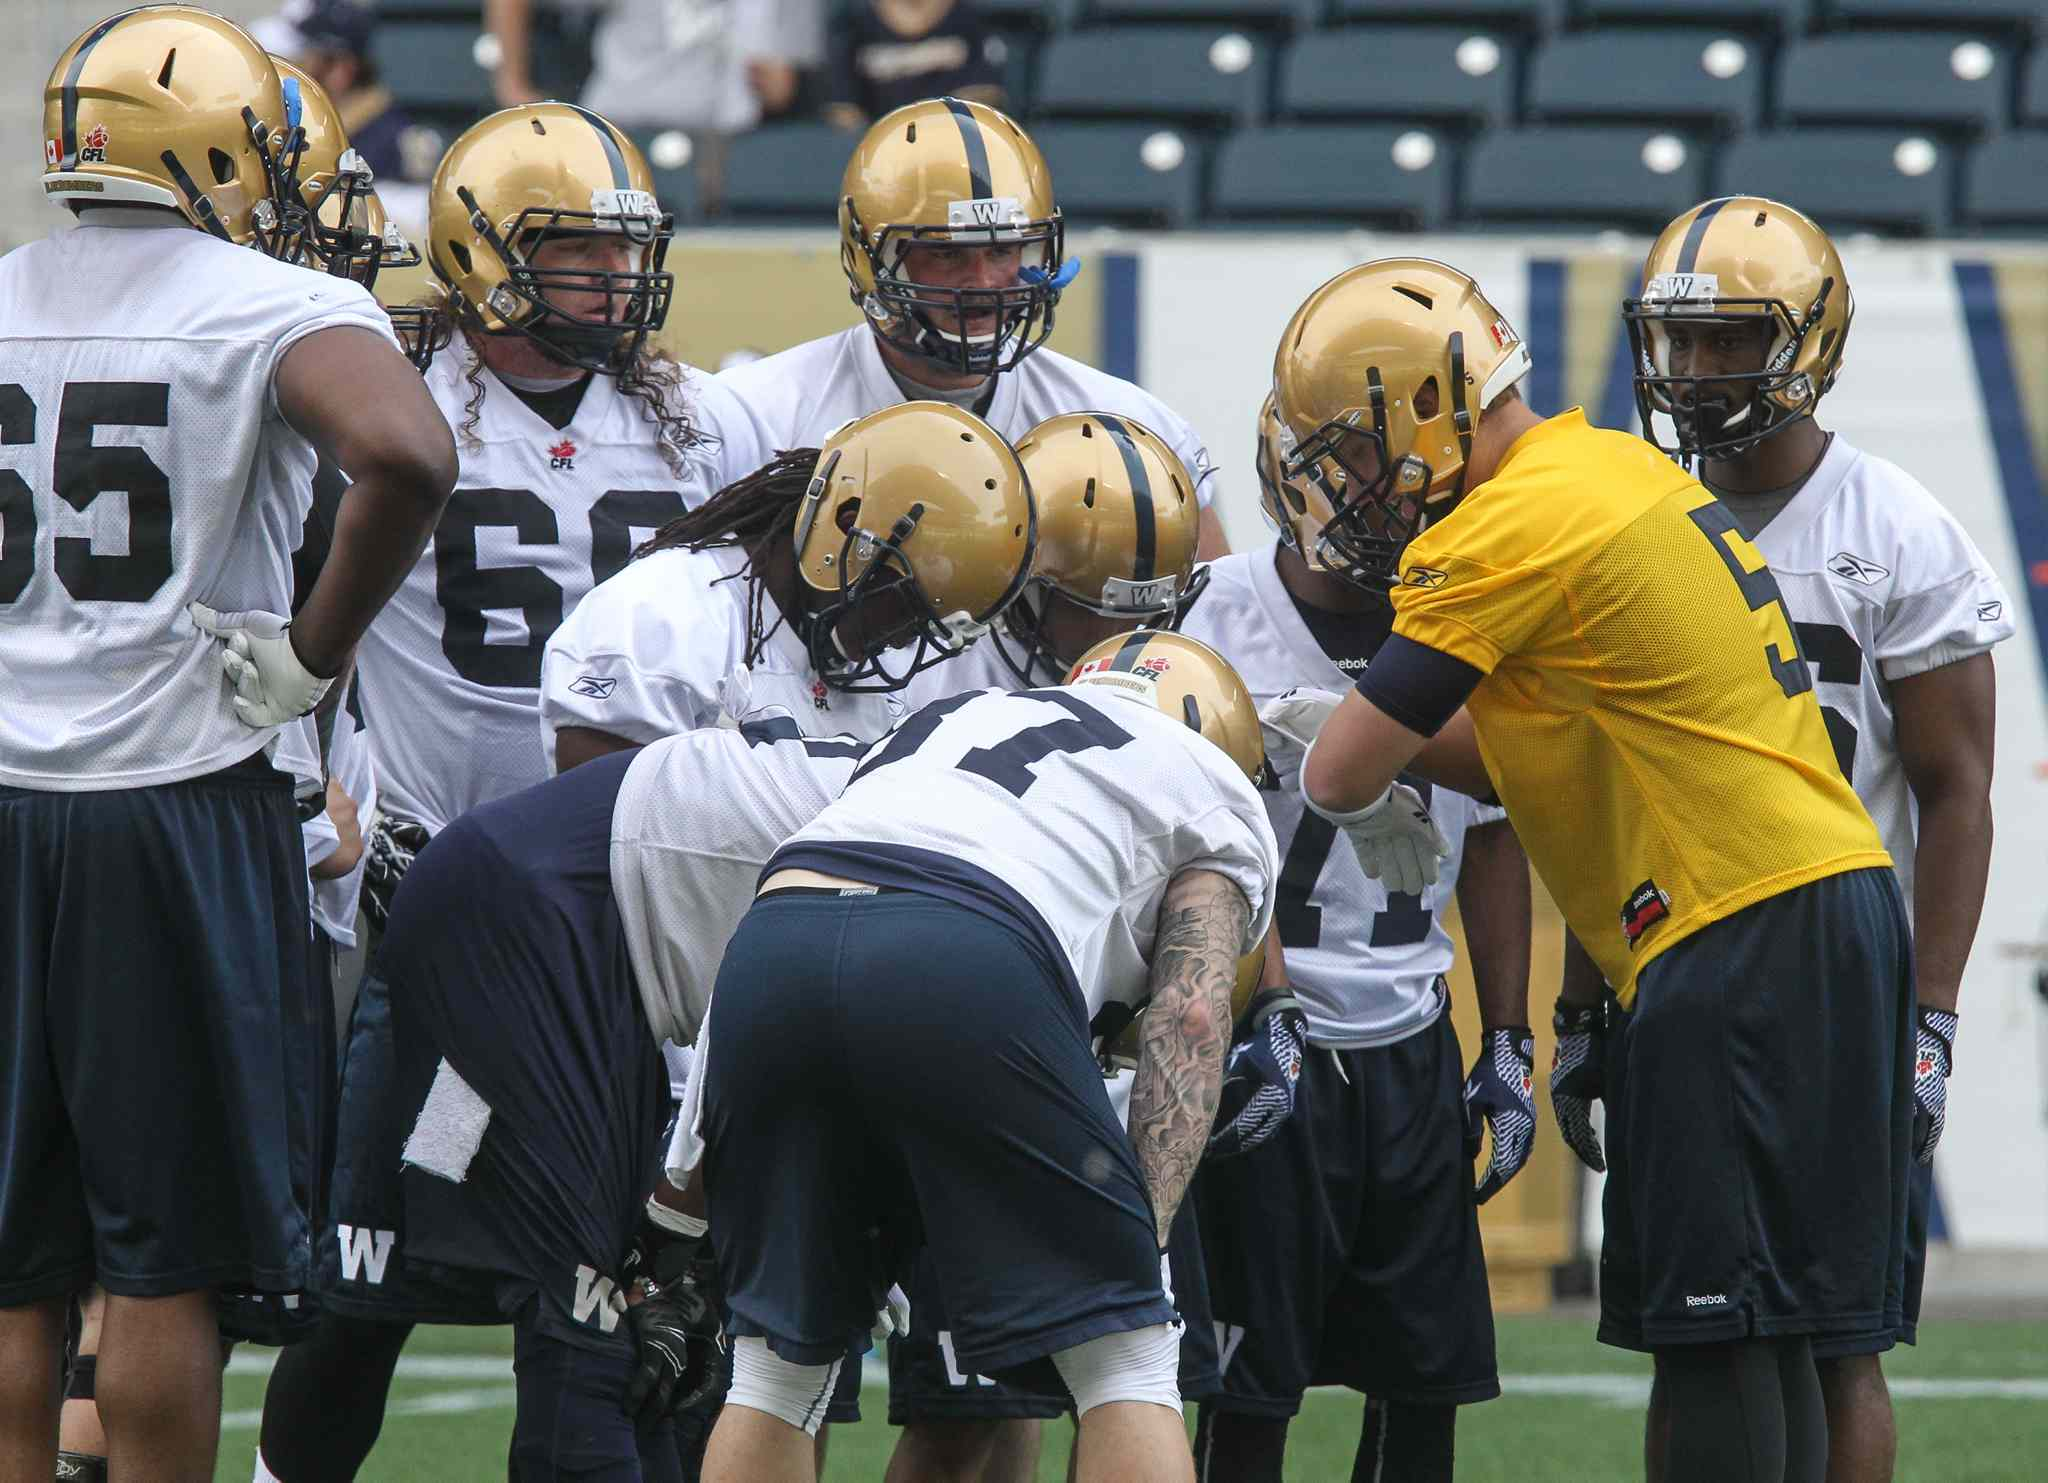 Quarterback Drew Willy (in yellow jersey) in the huddle during the first official day of the Winnipeg Blue Bombers training camp at Investors Group Field Sunday morning.